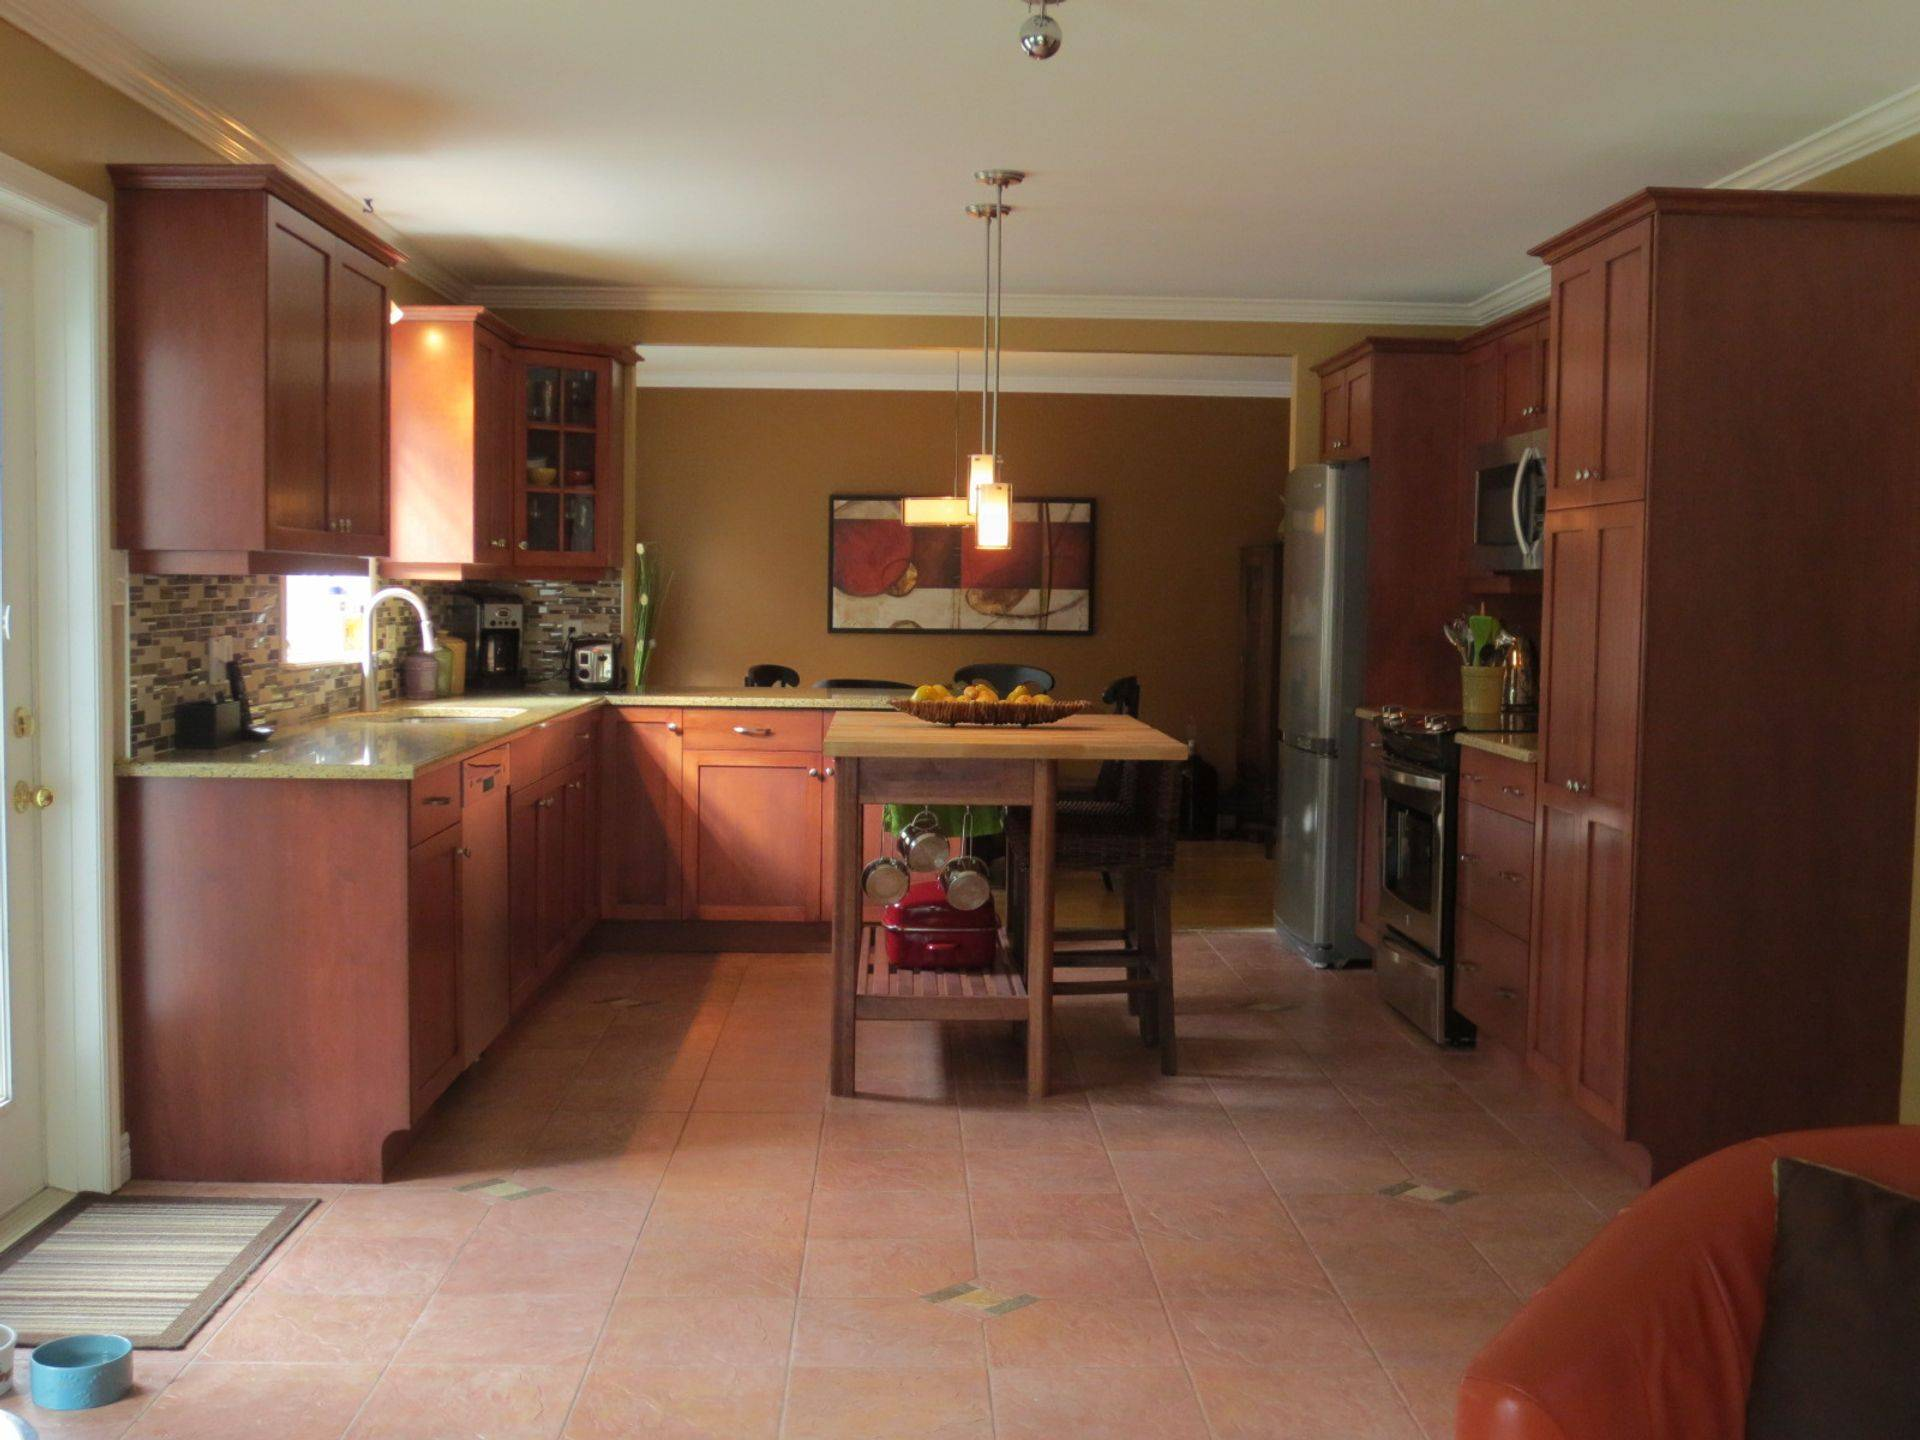 Kitchen Cabinet Refacing, Door Refinishing Painting Toronto